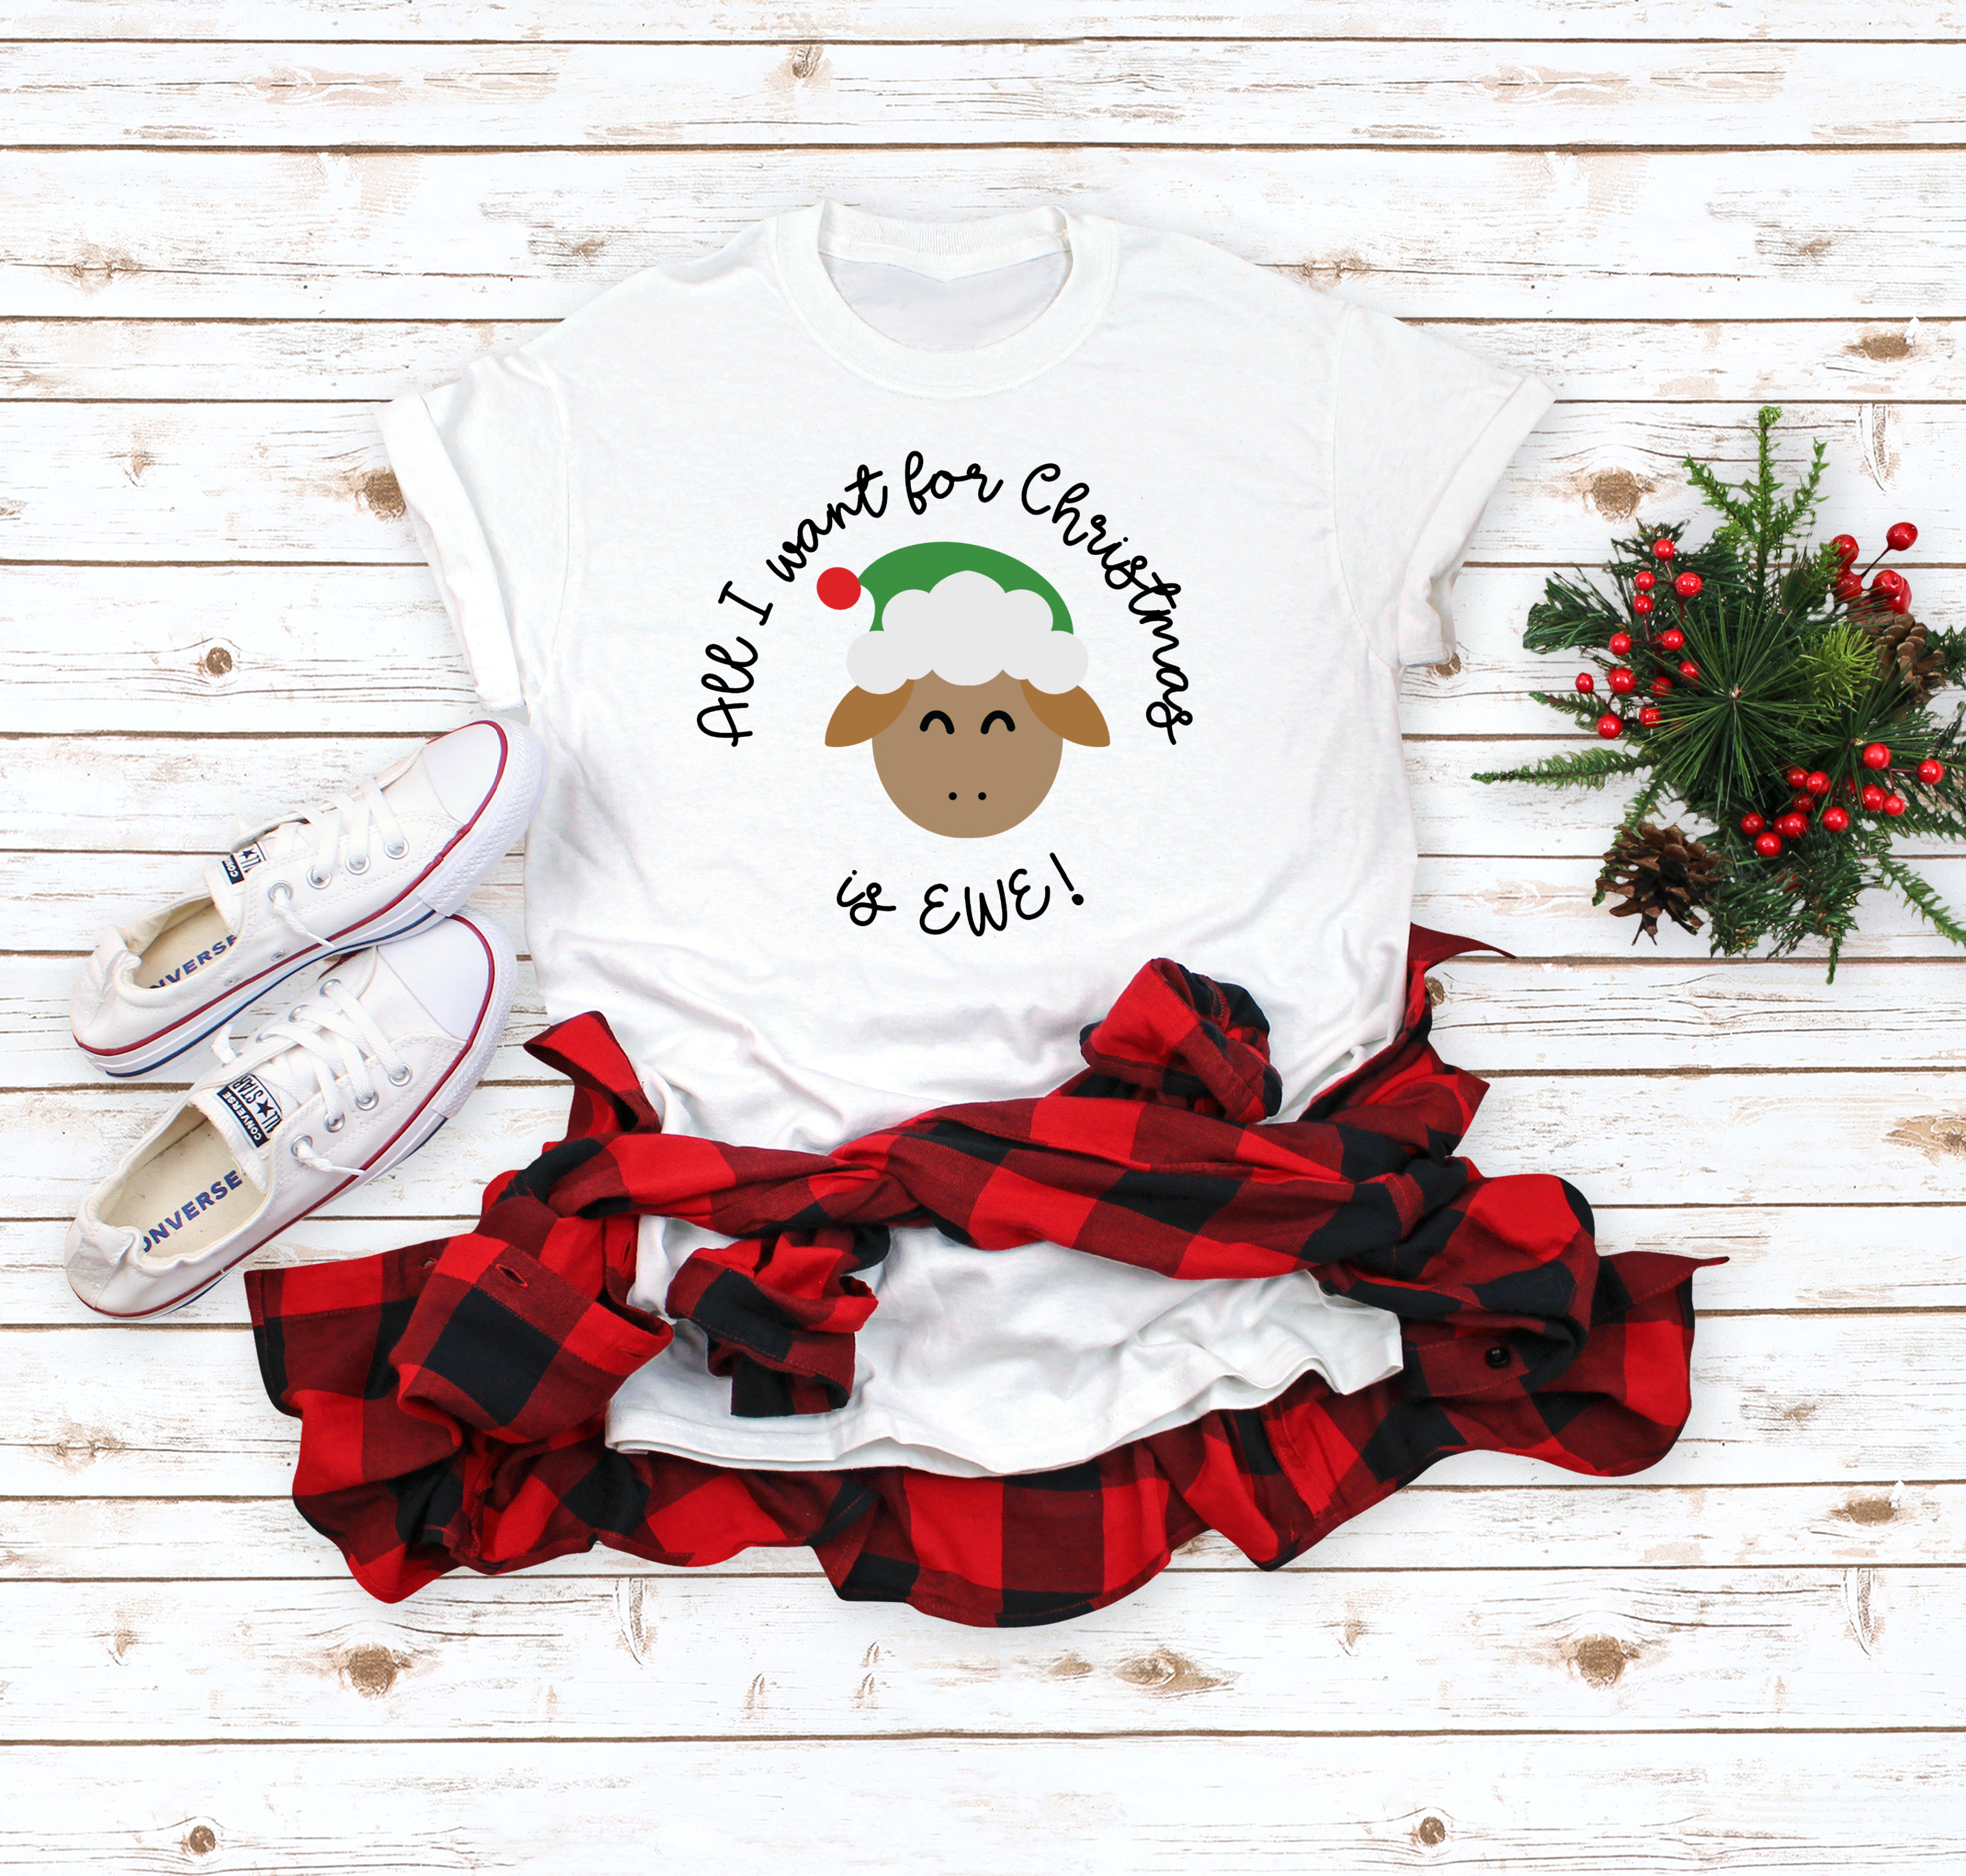 All I Want for Christmas is EWE SVG design on a white t-shirt with red and black flannet